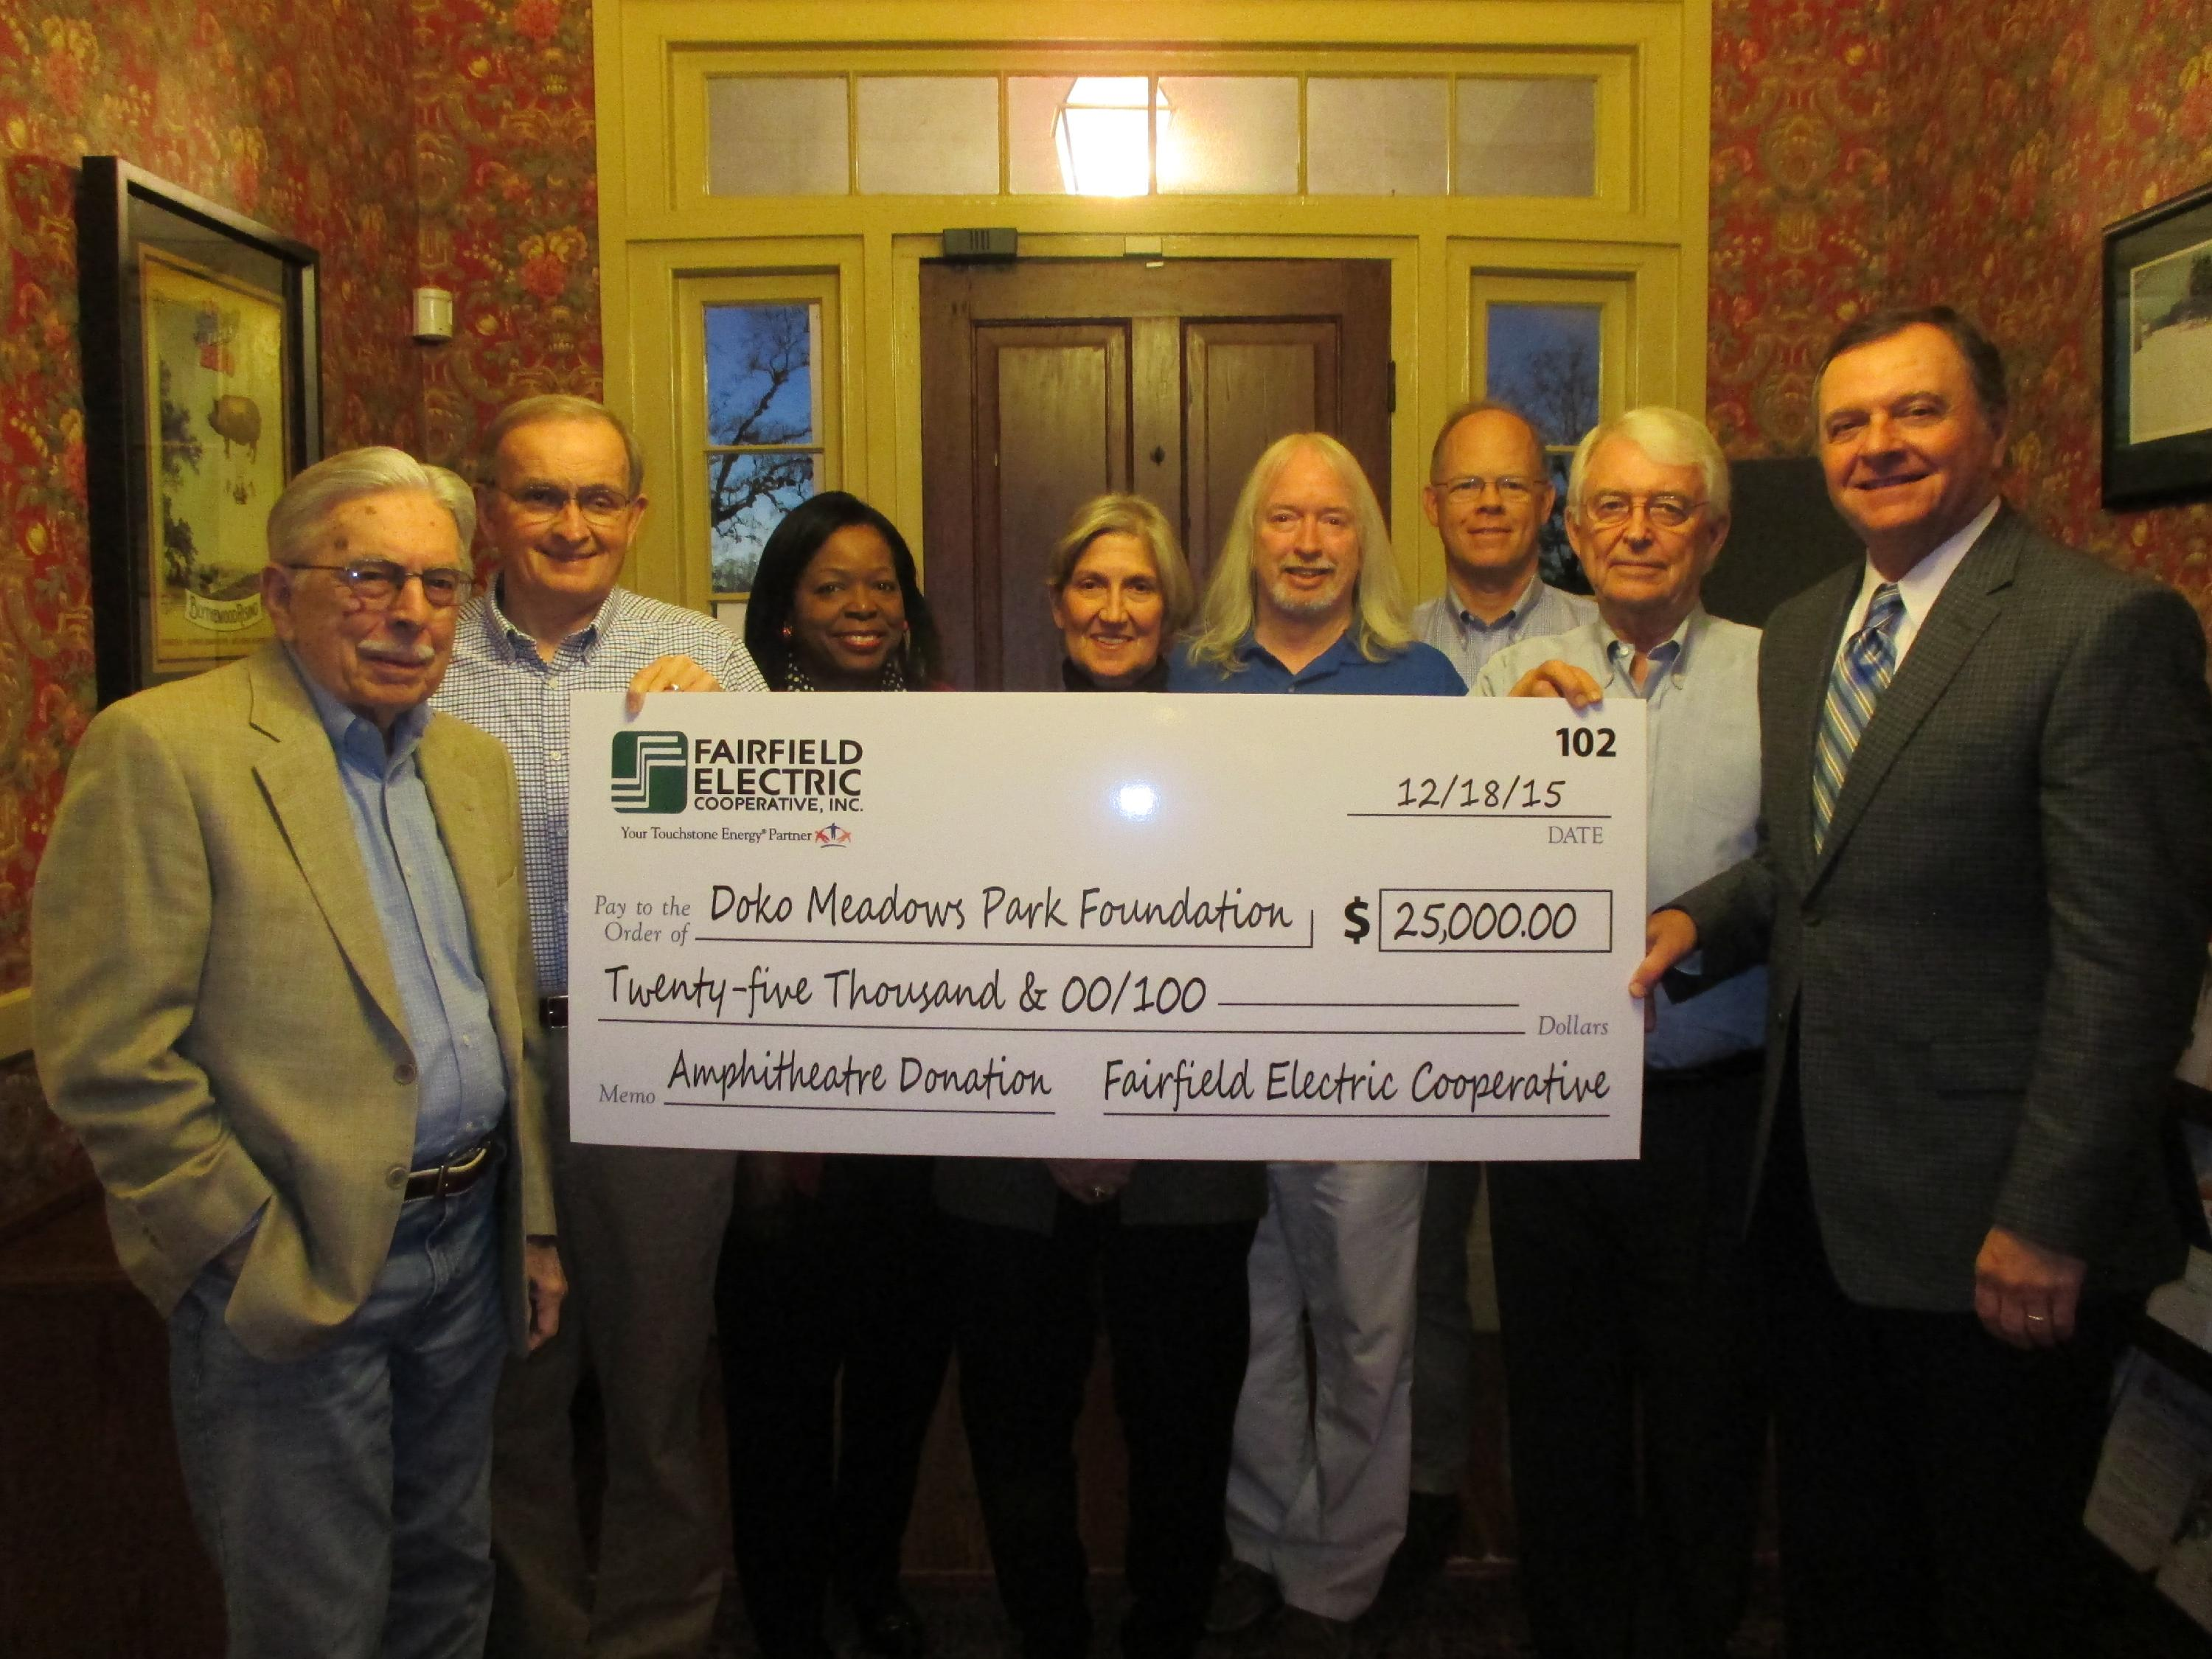 DMPF Fairfield Electric check presentation